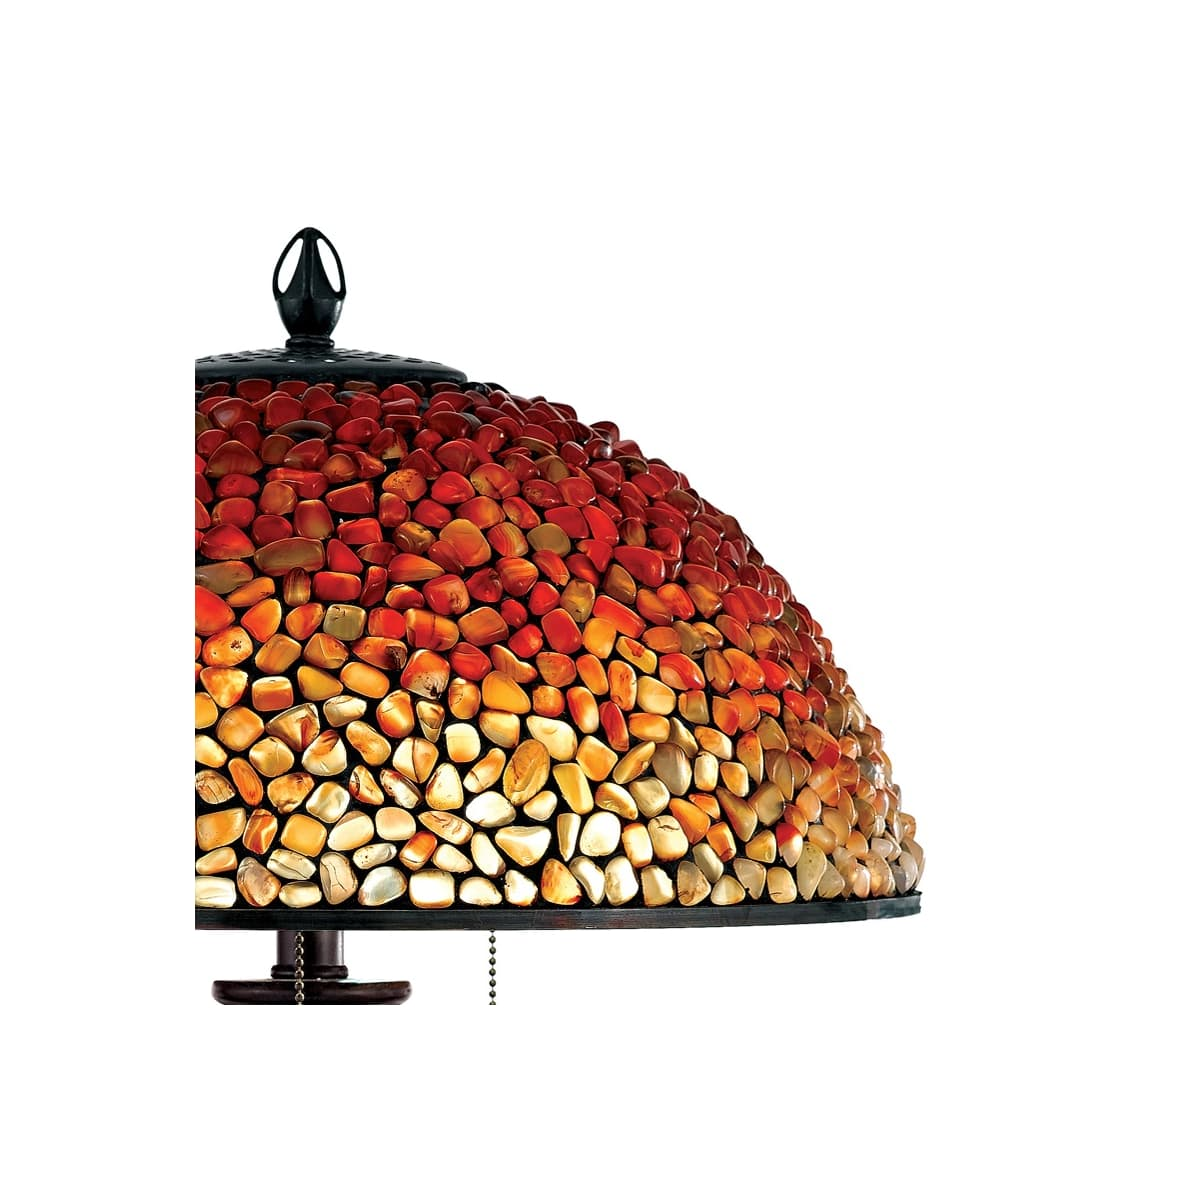 Quoizel Tf135tbc Burnt Cinnamon Pomez 3 Light 30 Tall Table Lamp With Agate Stone Shade Faucetdirect Com